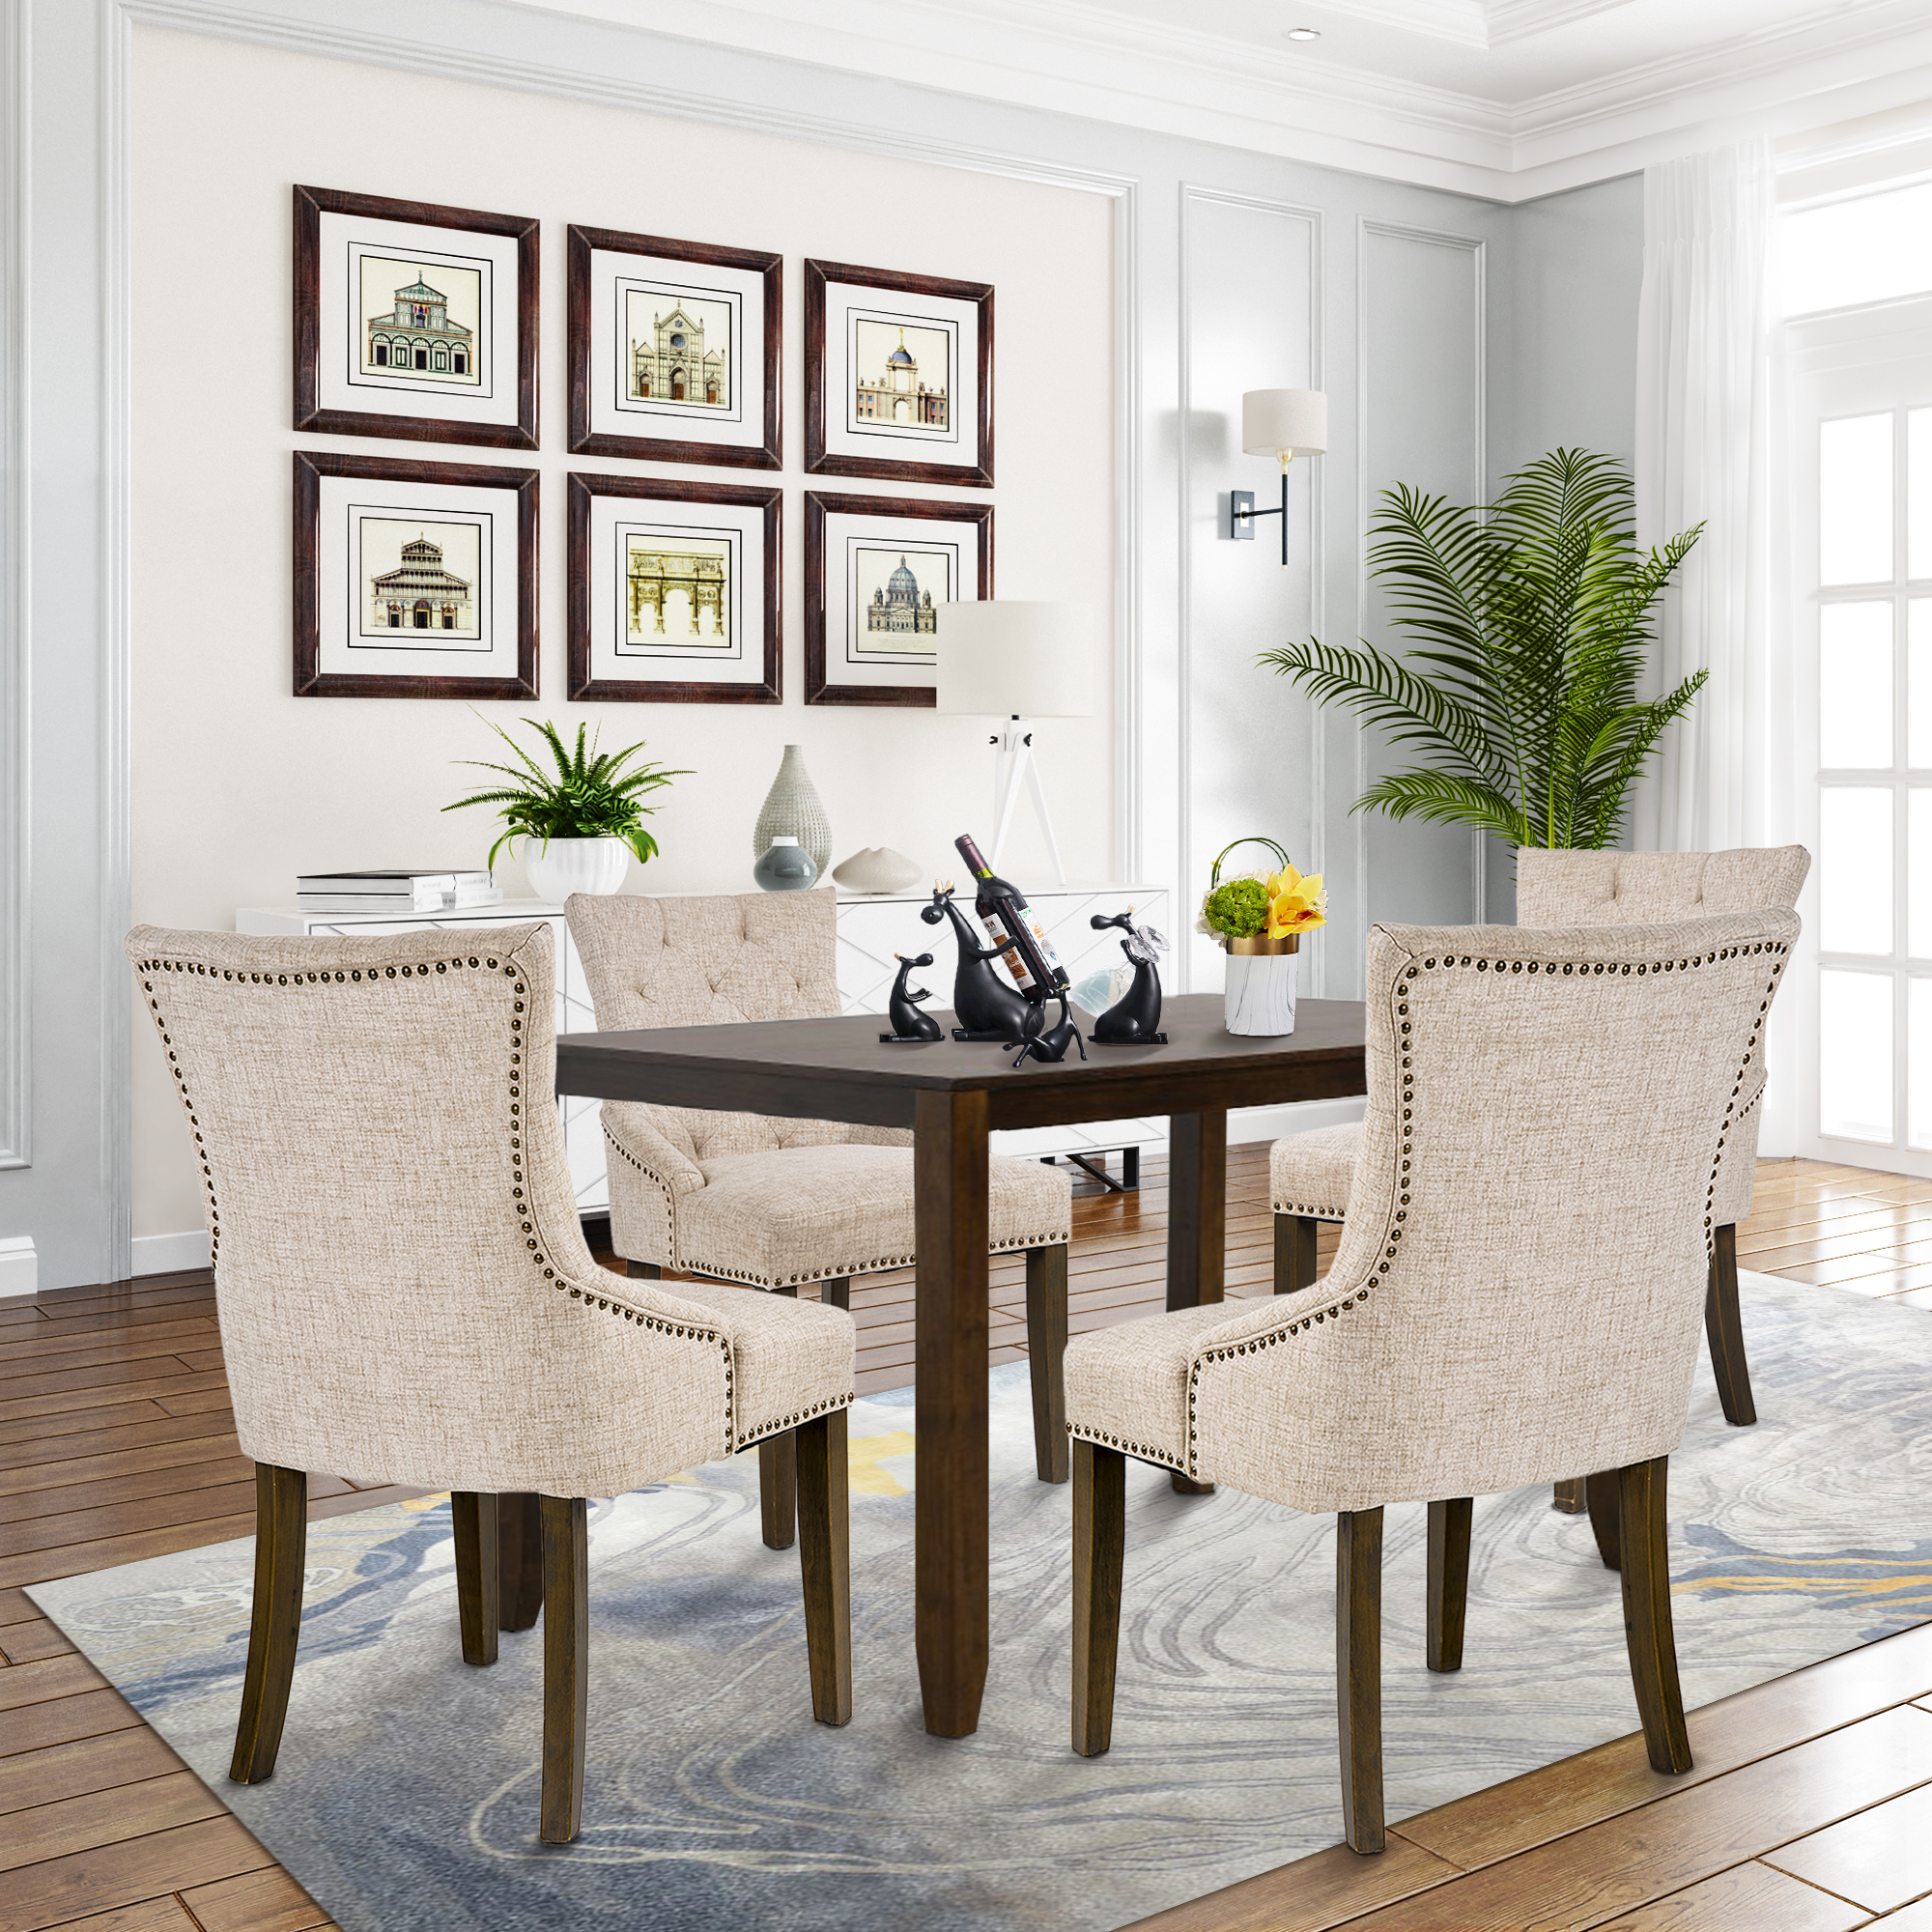 Urhomepro Tufted Upholstered Dining Chairs Set Of 4 Fabric Dining Chairs With Armrest Nailhead Trim Solid Wood Leg Vintage Dining Room Chairs Accent Chair For Living Room Bedroom Beige W12200 Walmart Com